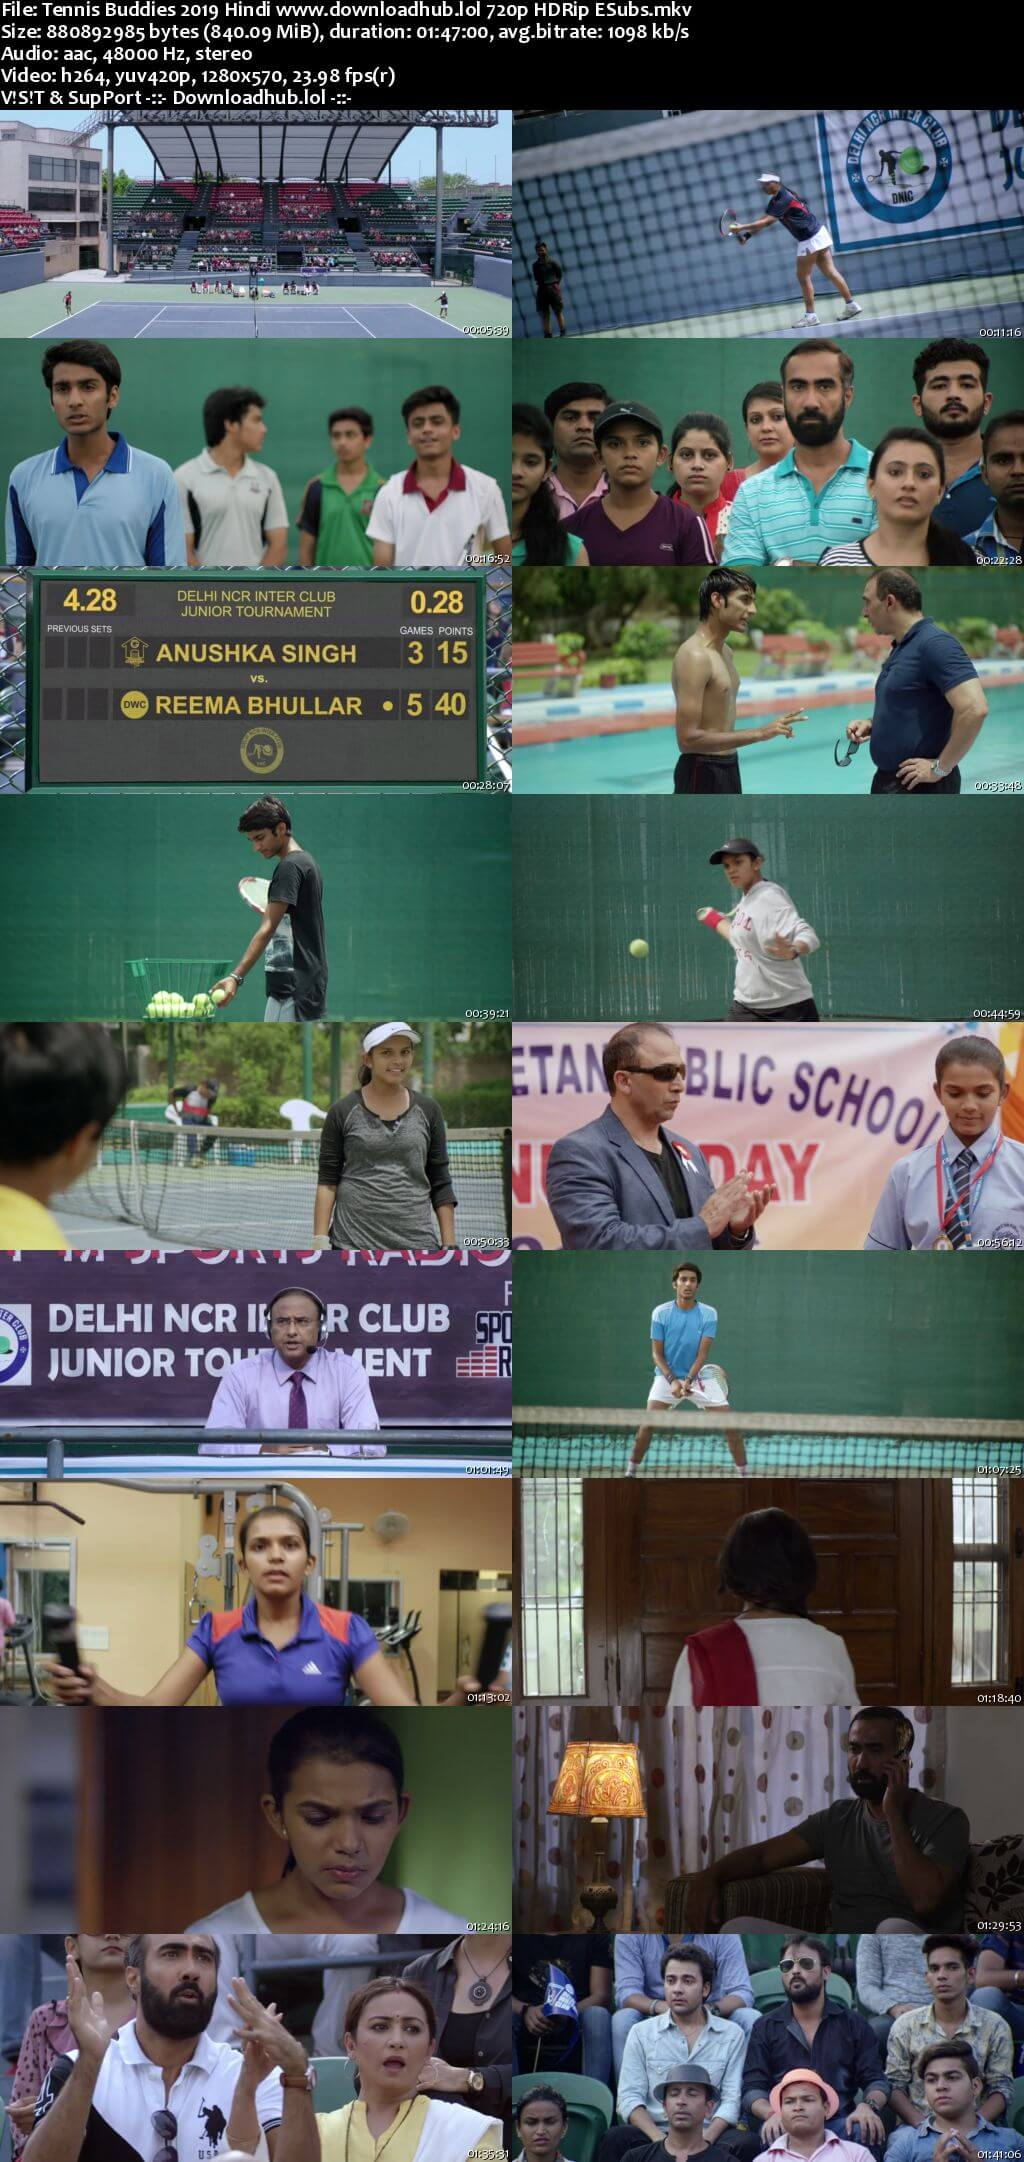 Tennis Buddies 2019 Hindi 720p HDRip ESubs